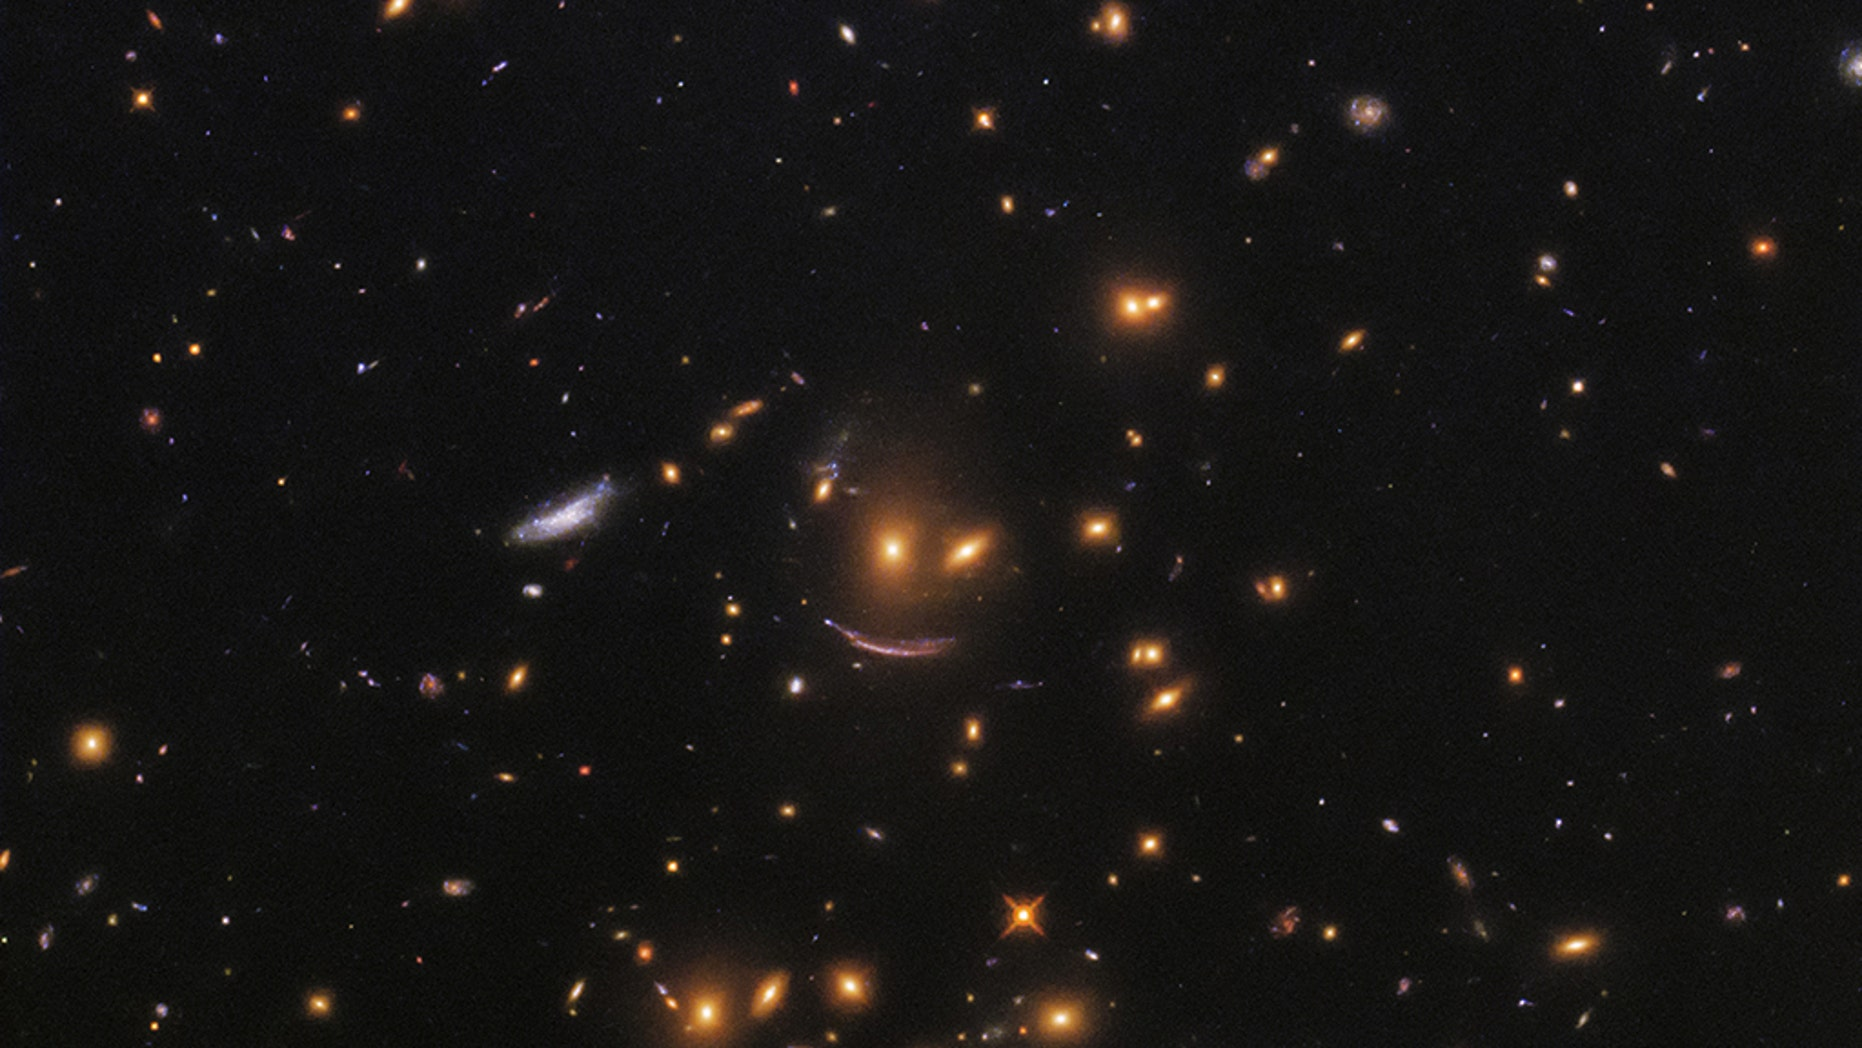 """NASArecently shared a photo taken by the Hubble Space Telescope that shows a formation of galaxies forming what looks like a smiley face.<br data-cke-eol=""""1"""">"""